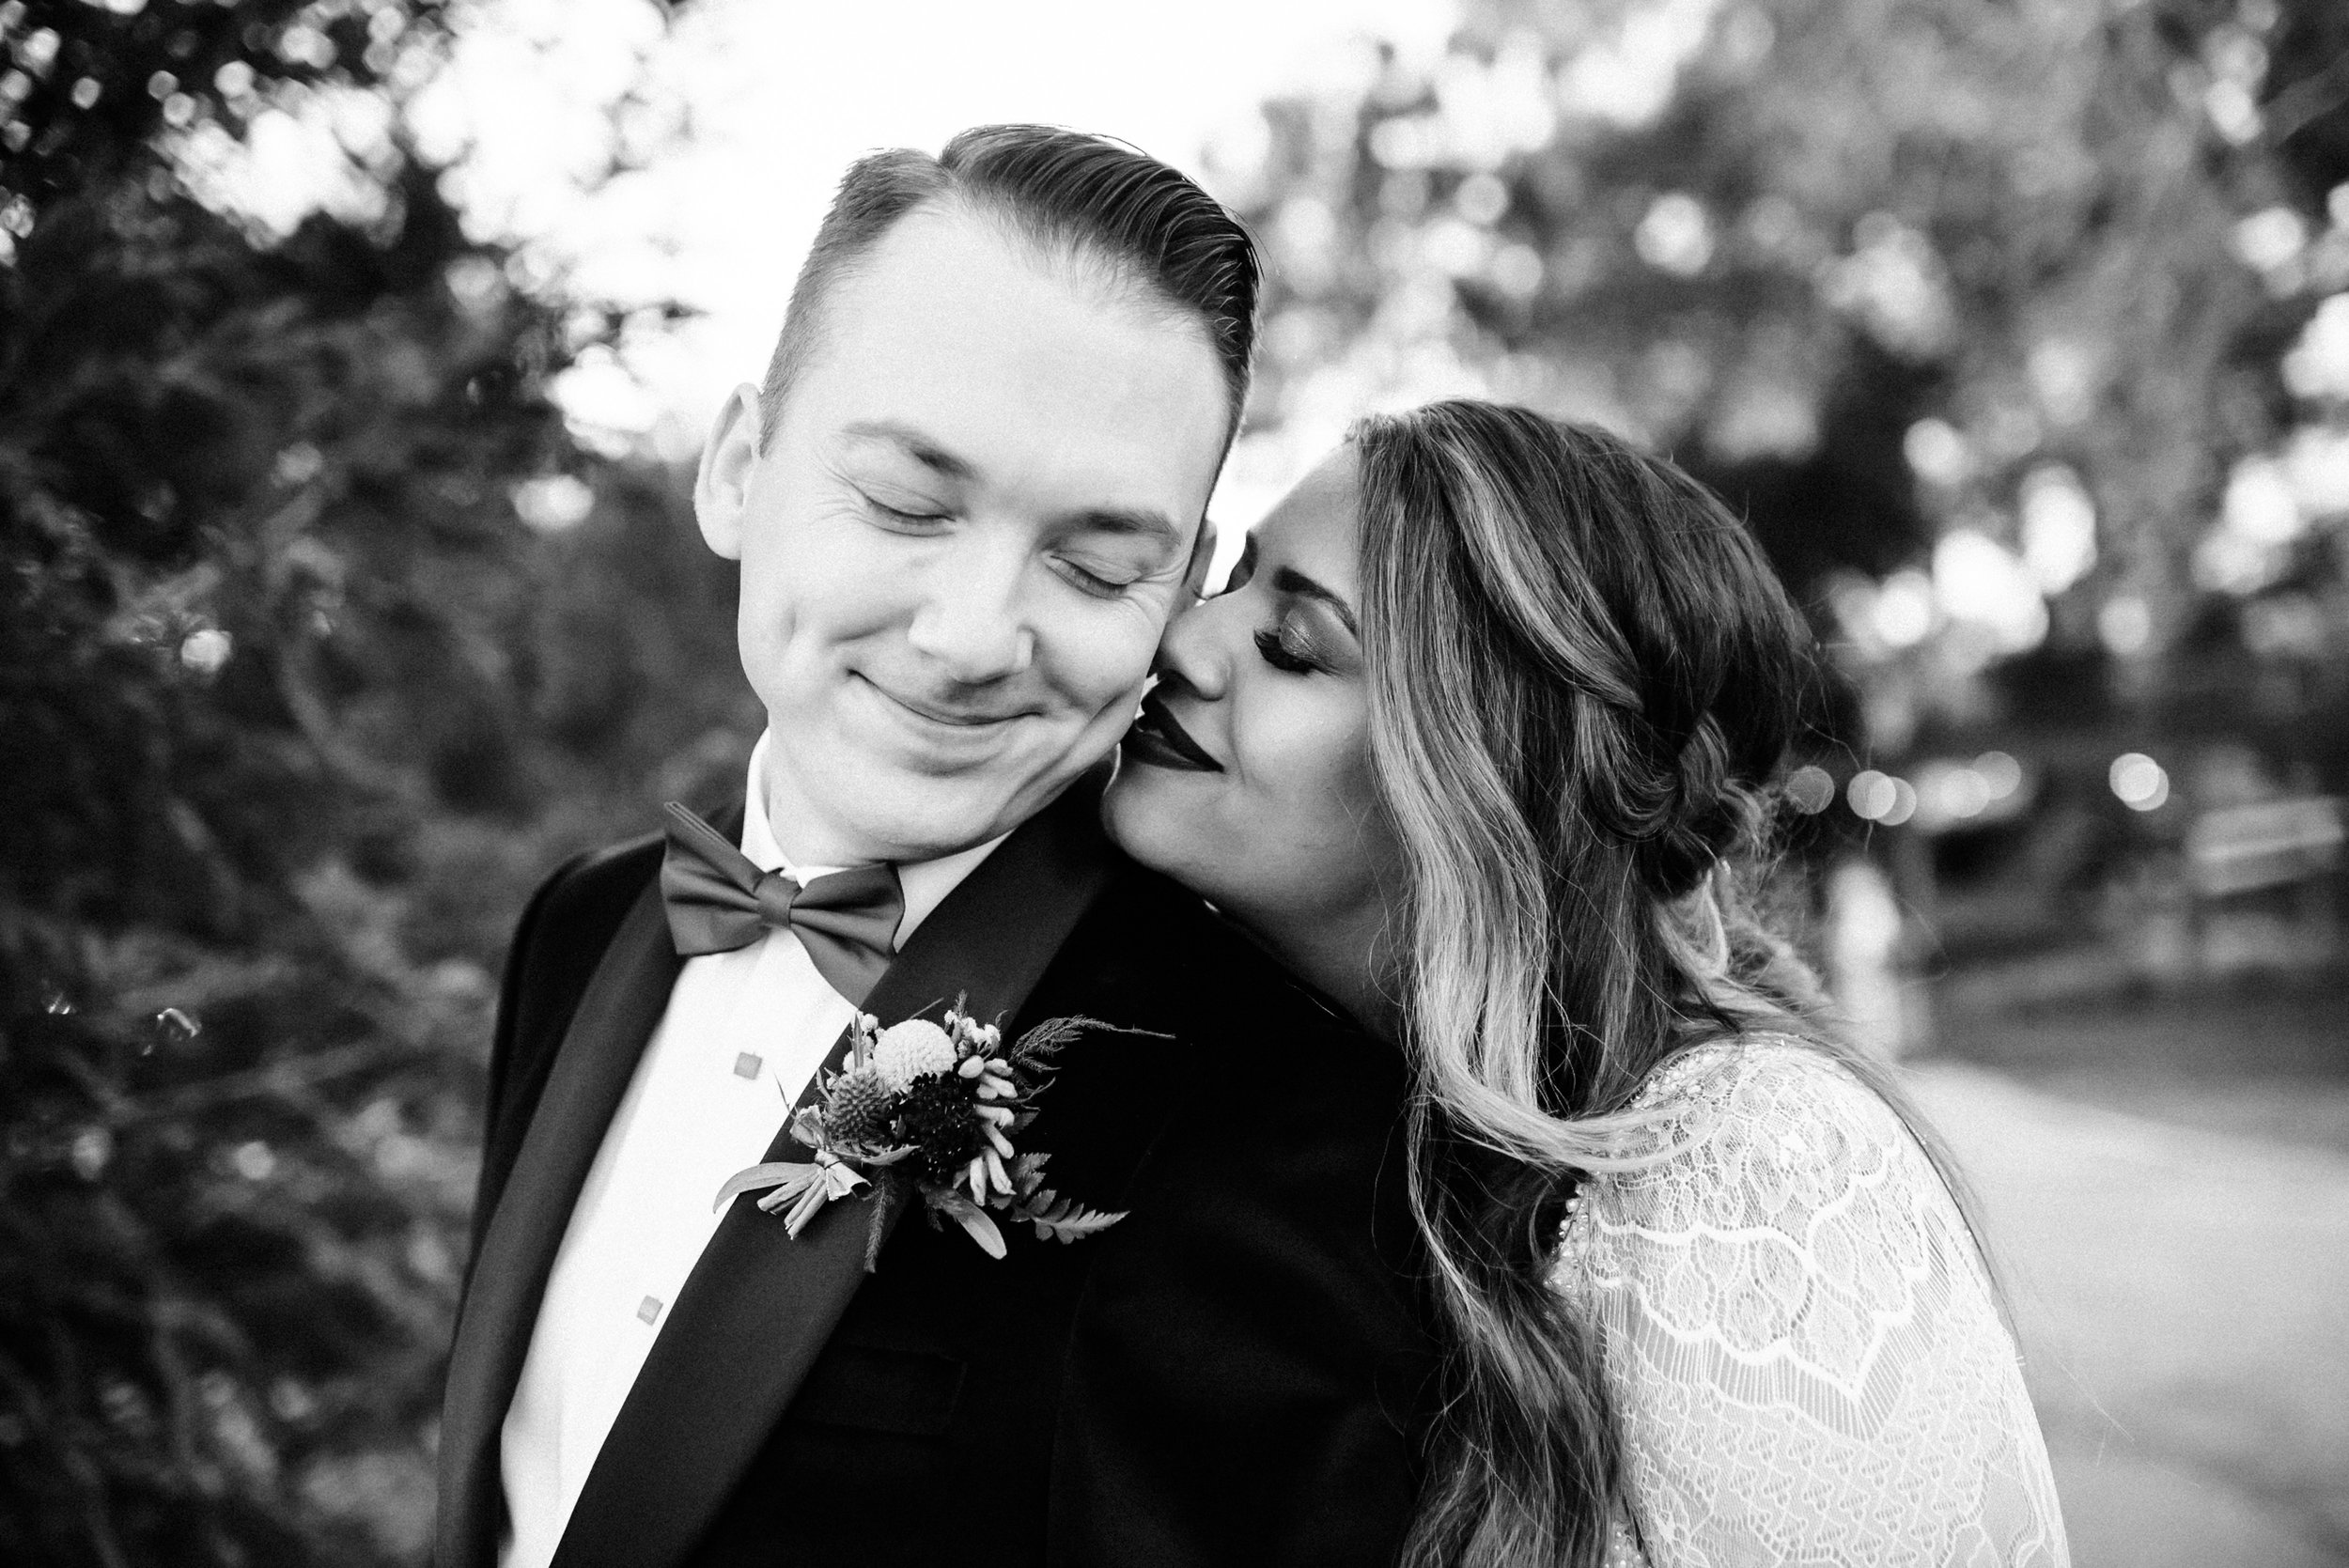 bay area nontraditional wedding photographer southern california boho wedding love light magic san francisco oakland northern california-898.jpg